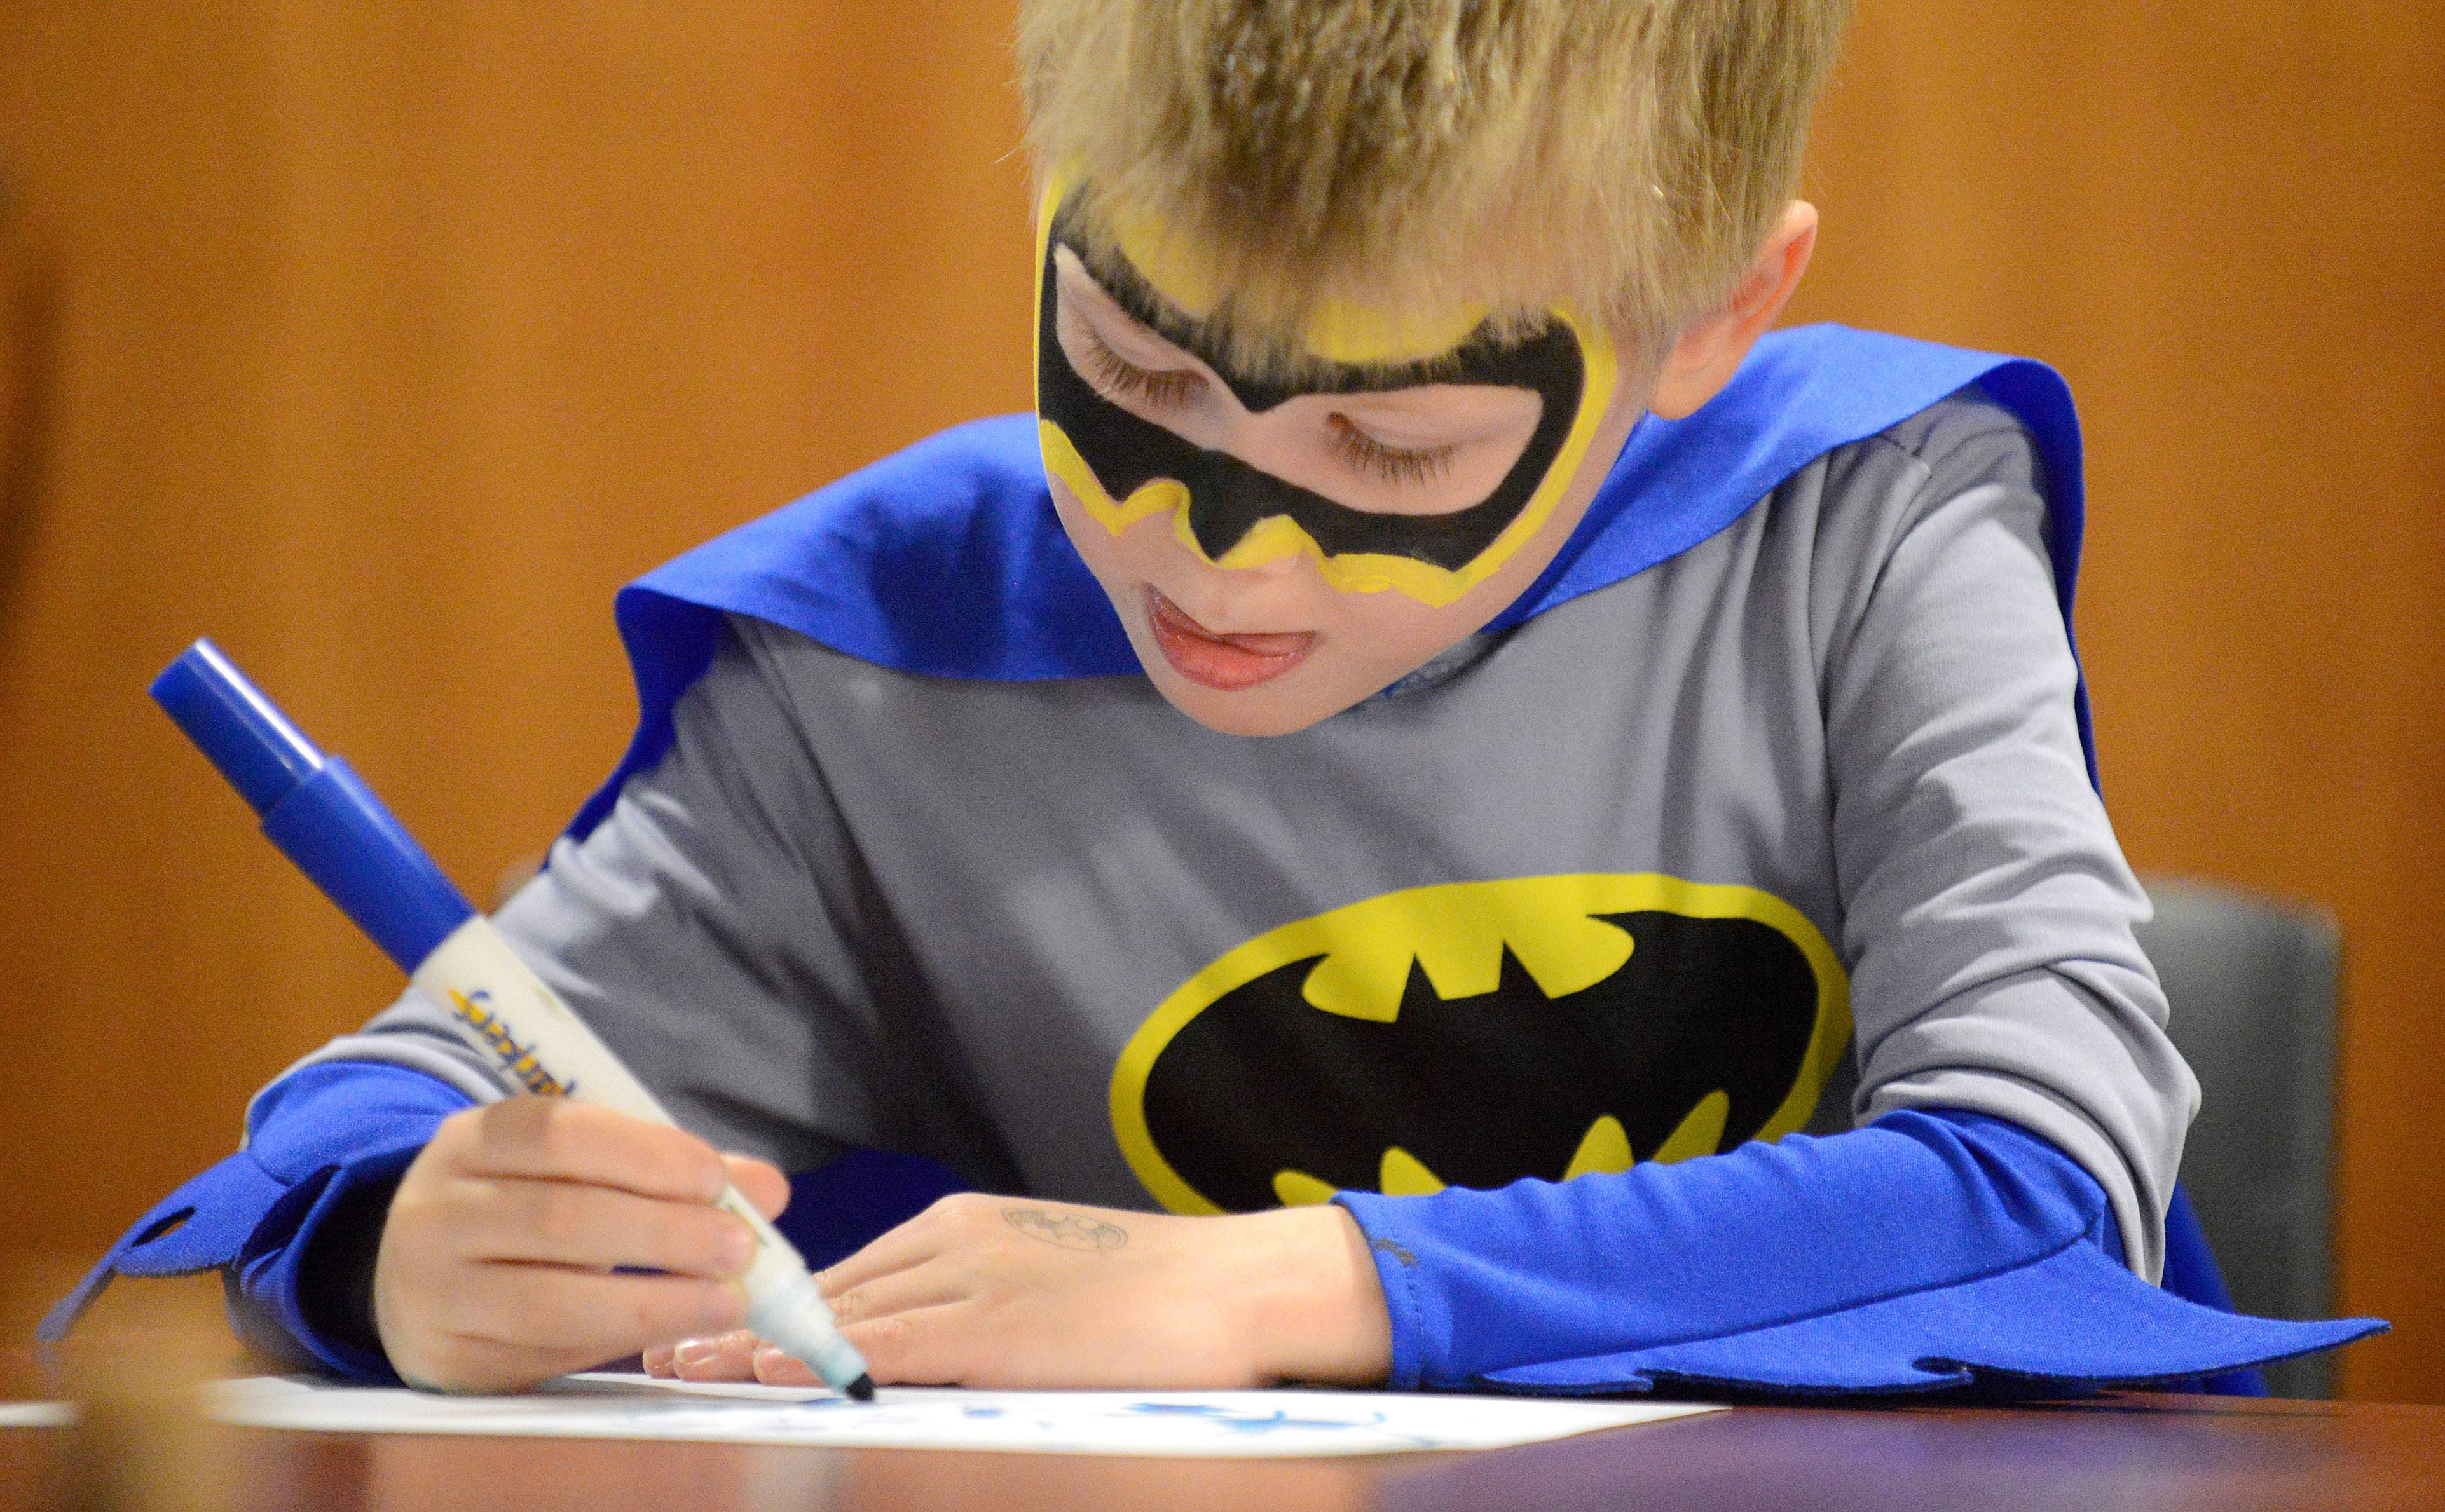 Caleb Reinheimer, 6, of Elgin draws his own three-panel comic book sketch at the fifth annual Comic Book Mania Convention at the Gail Borden Library in Elgin on Saturday during a class on comic book creation.